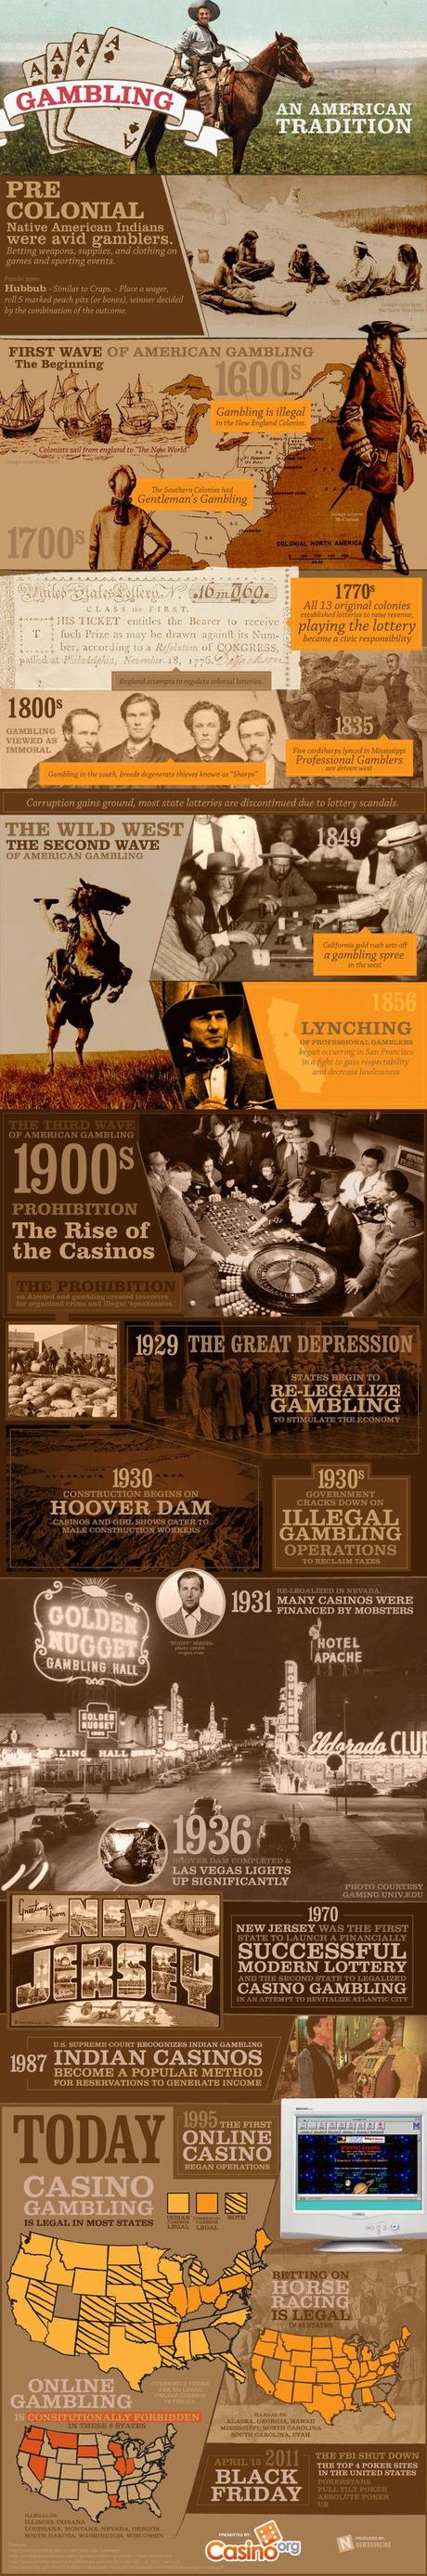 History of gambling in america